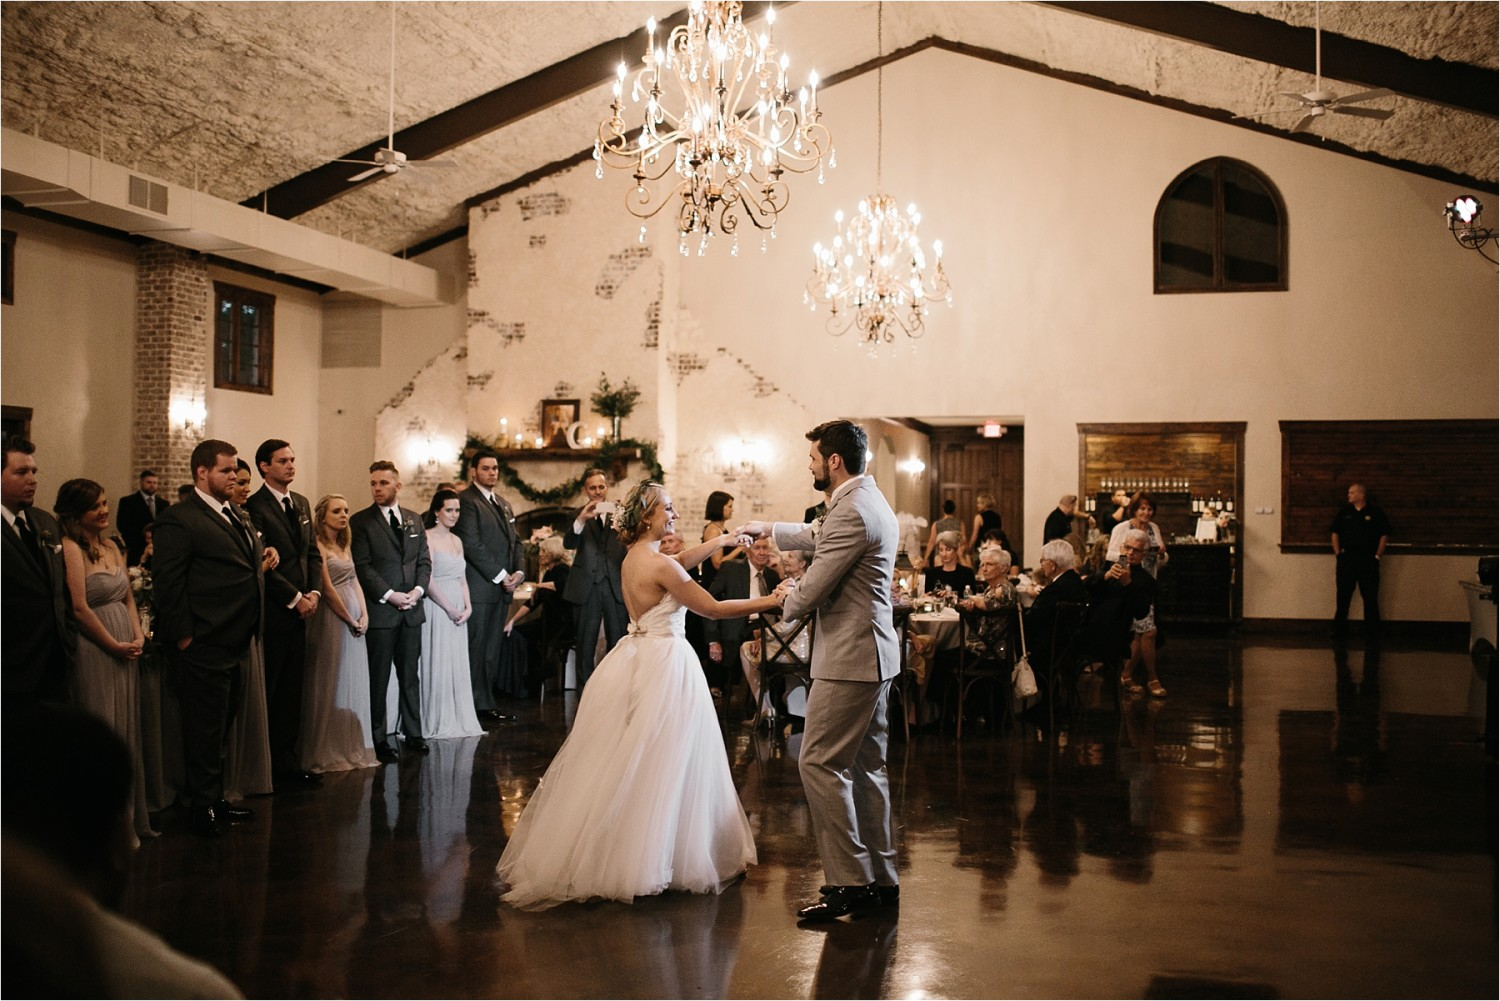 brad-lara-__-a-grey-and-blush-pink-intimate-wedding-at-hidden-waters-event-center-in-waxahachie-tx-by-north-texas-wedding-photographer-rachel-meagan-photography-_-078